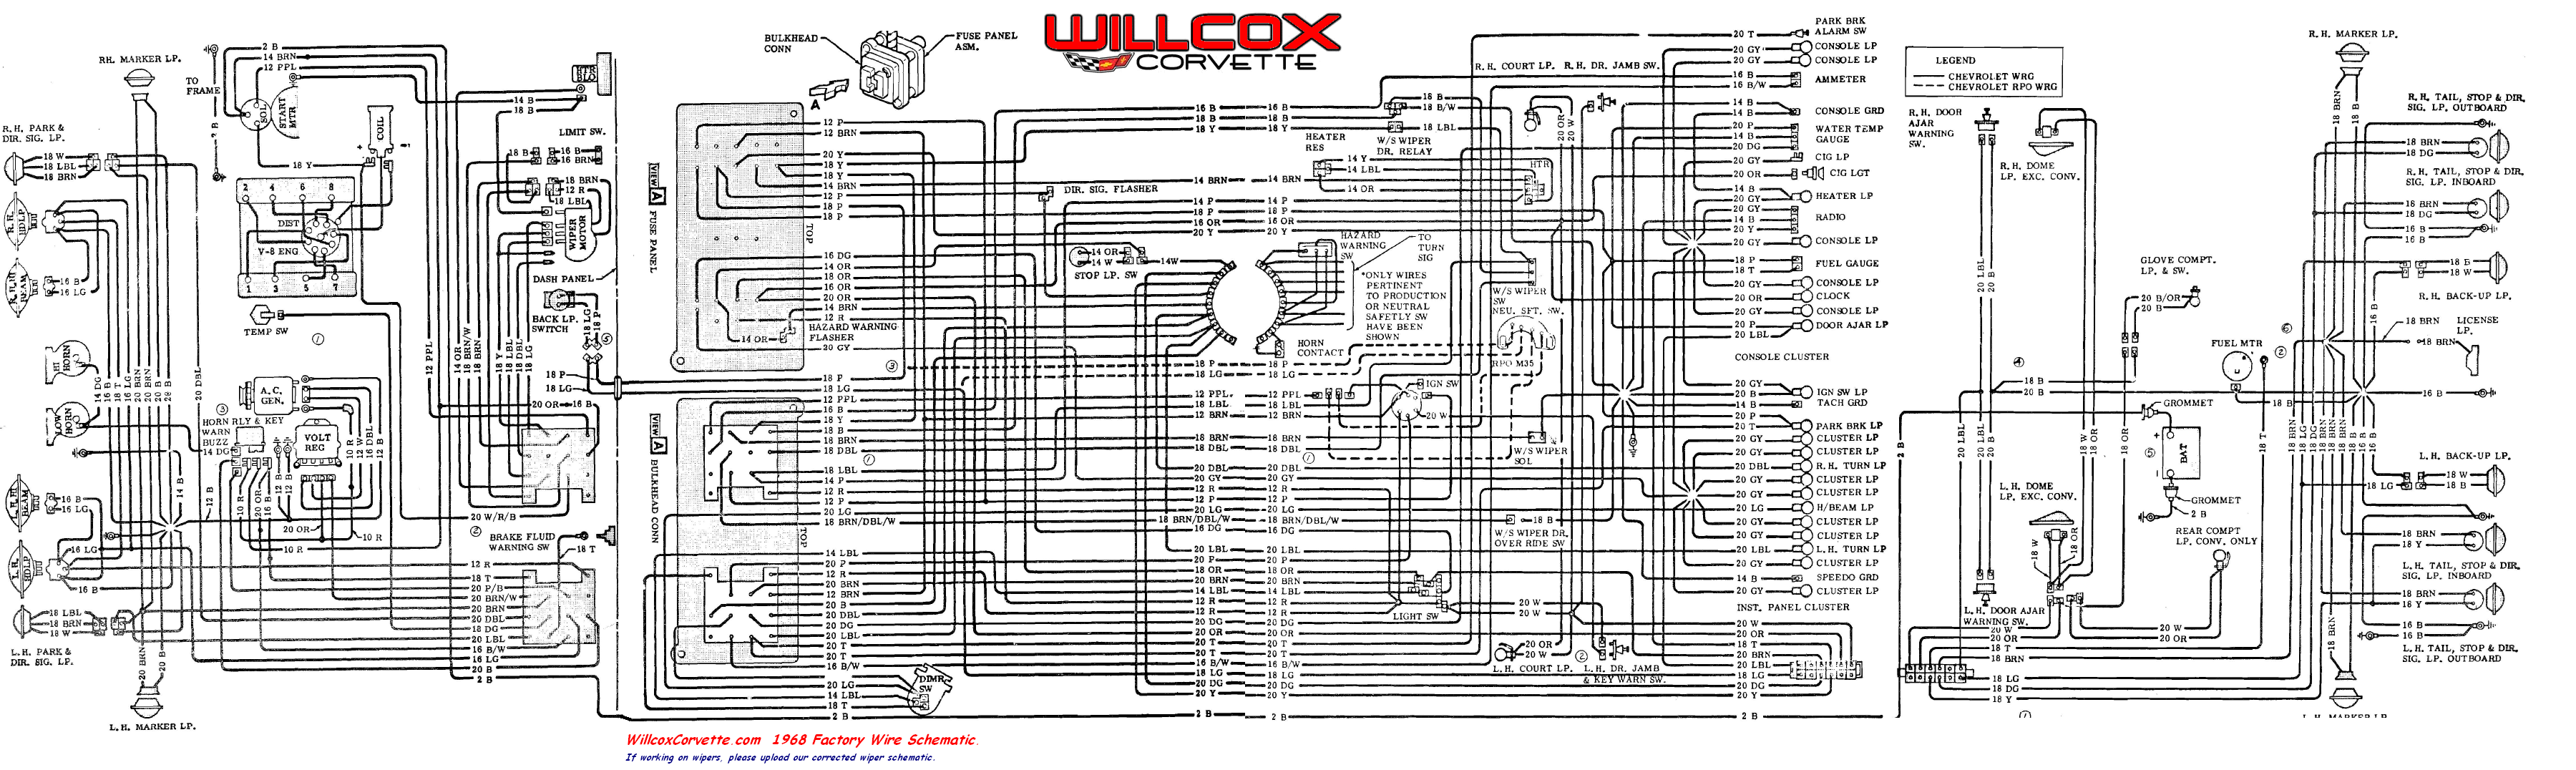 Color Coded Wiring 1958 Corvette Real Diagram Impala 1968 Tracer Schematic Willcox Chevy Paint Colors